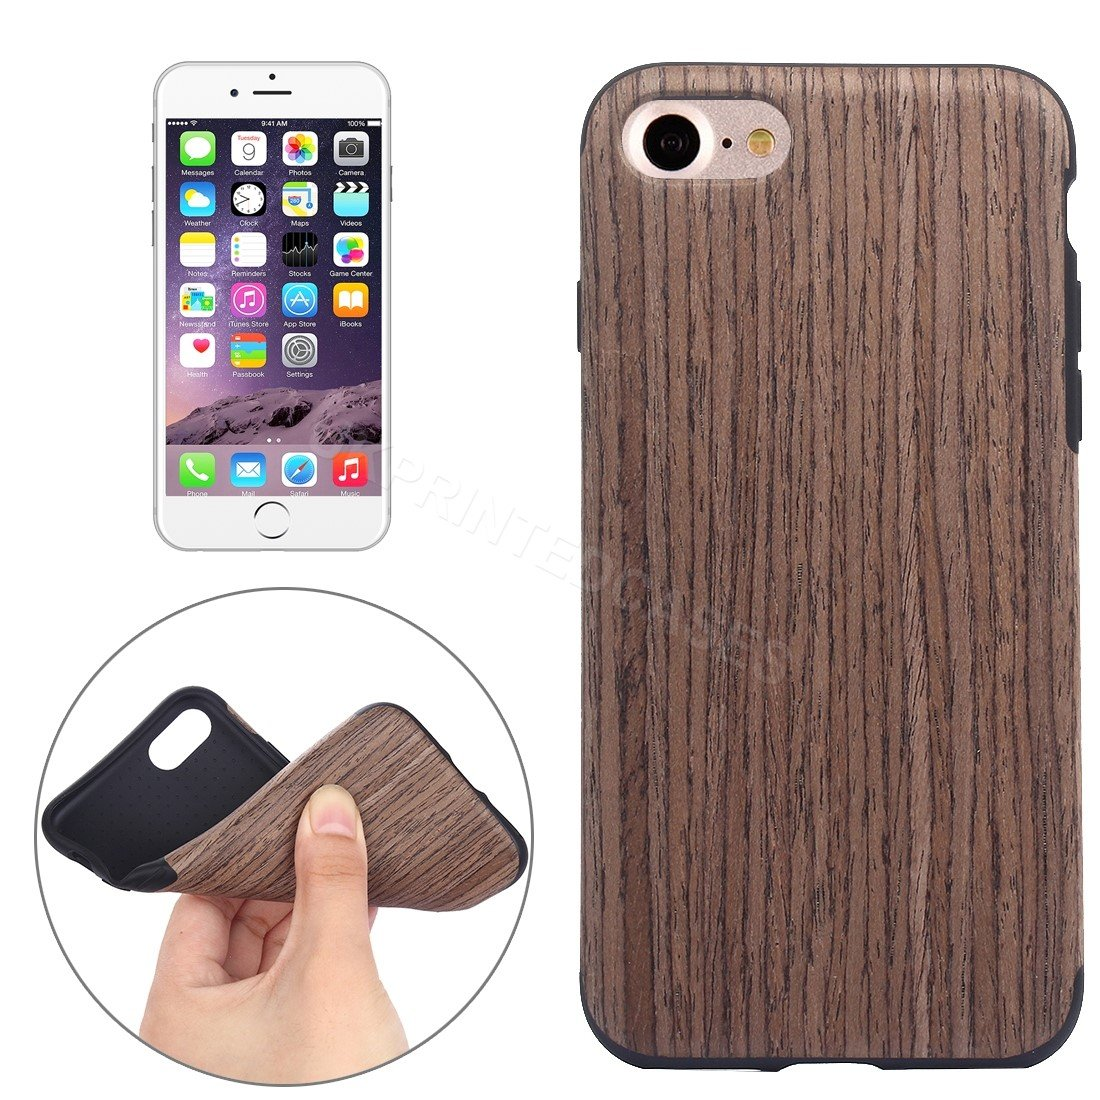 Wood Grain Effect Soft Mobile Phone Case For iPhone